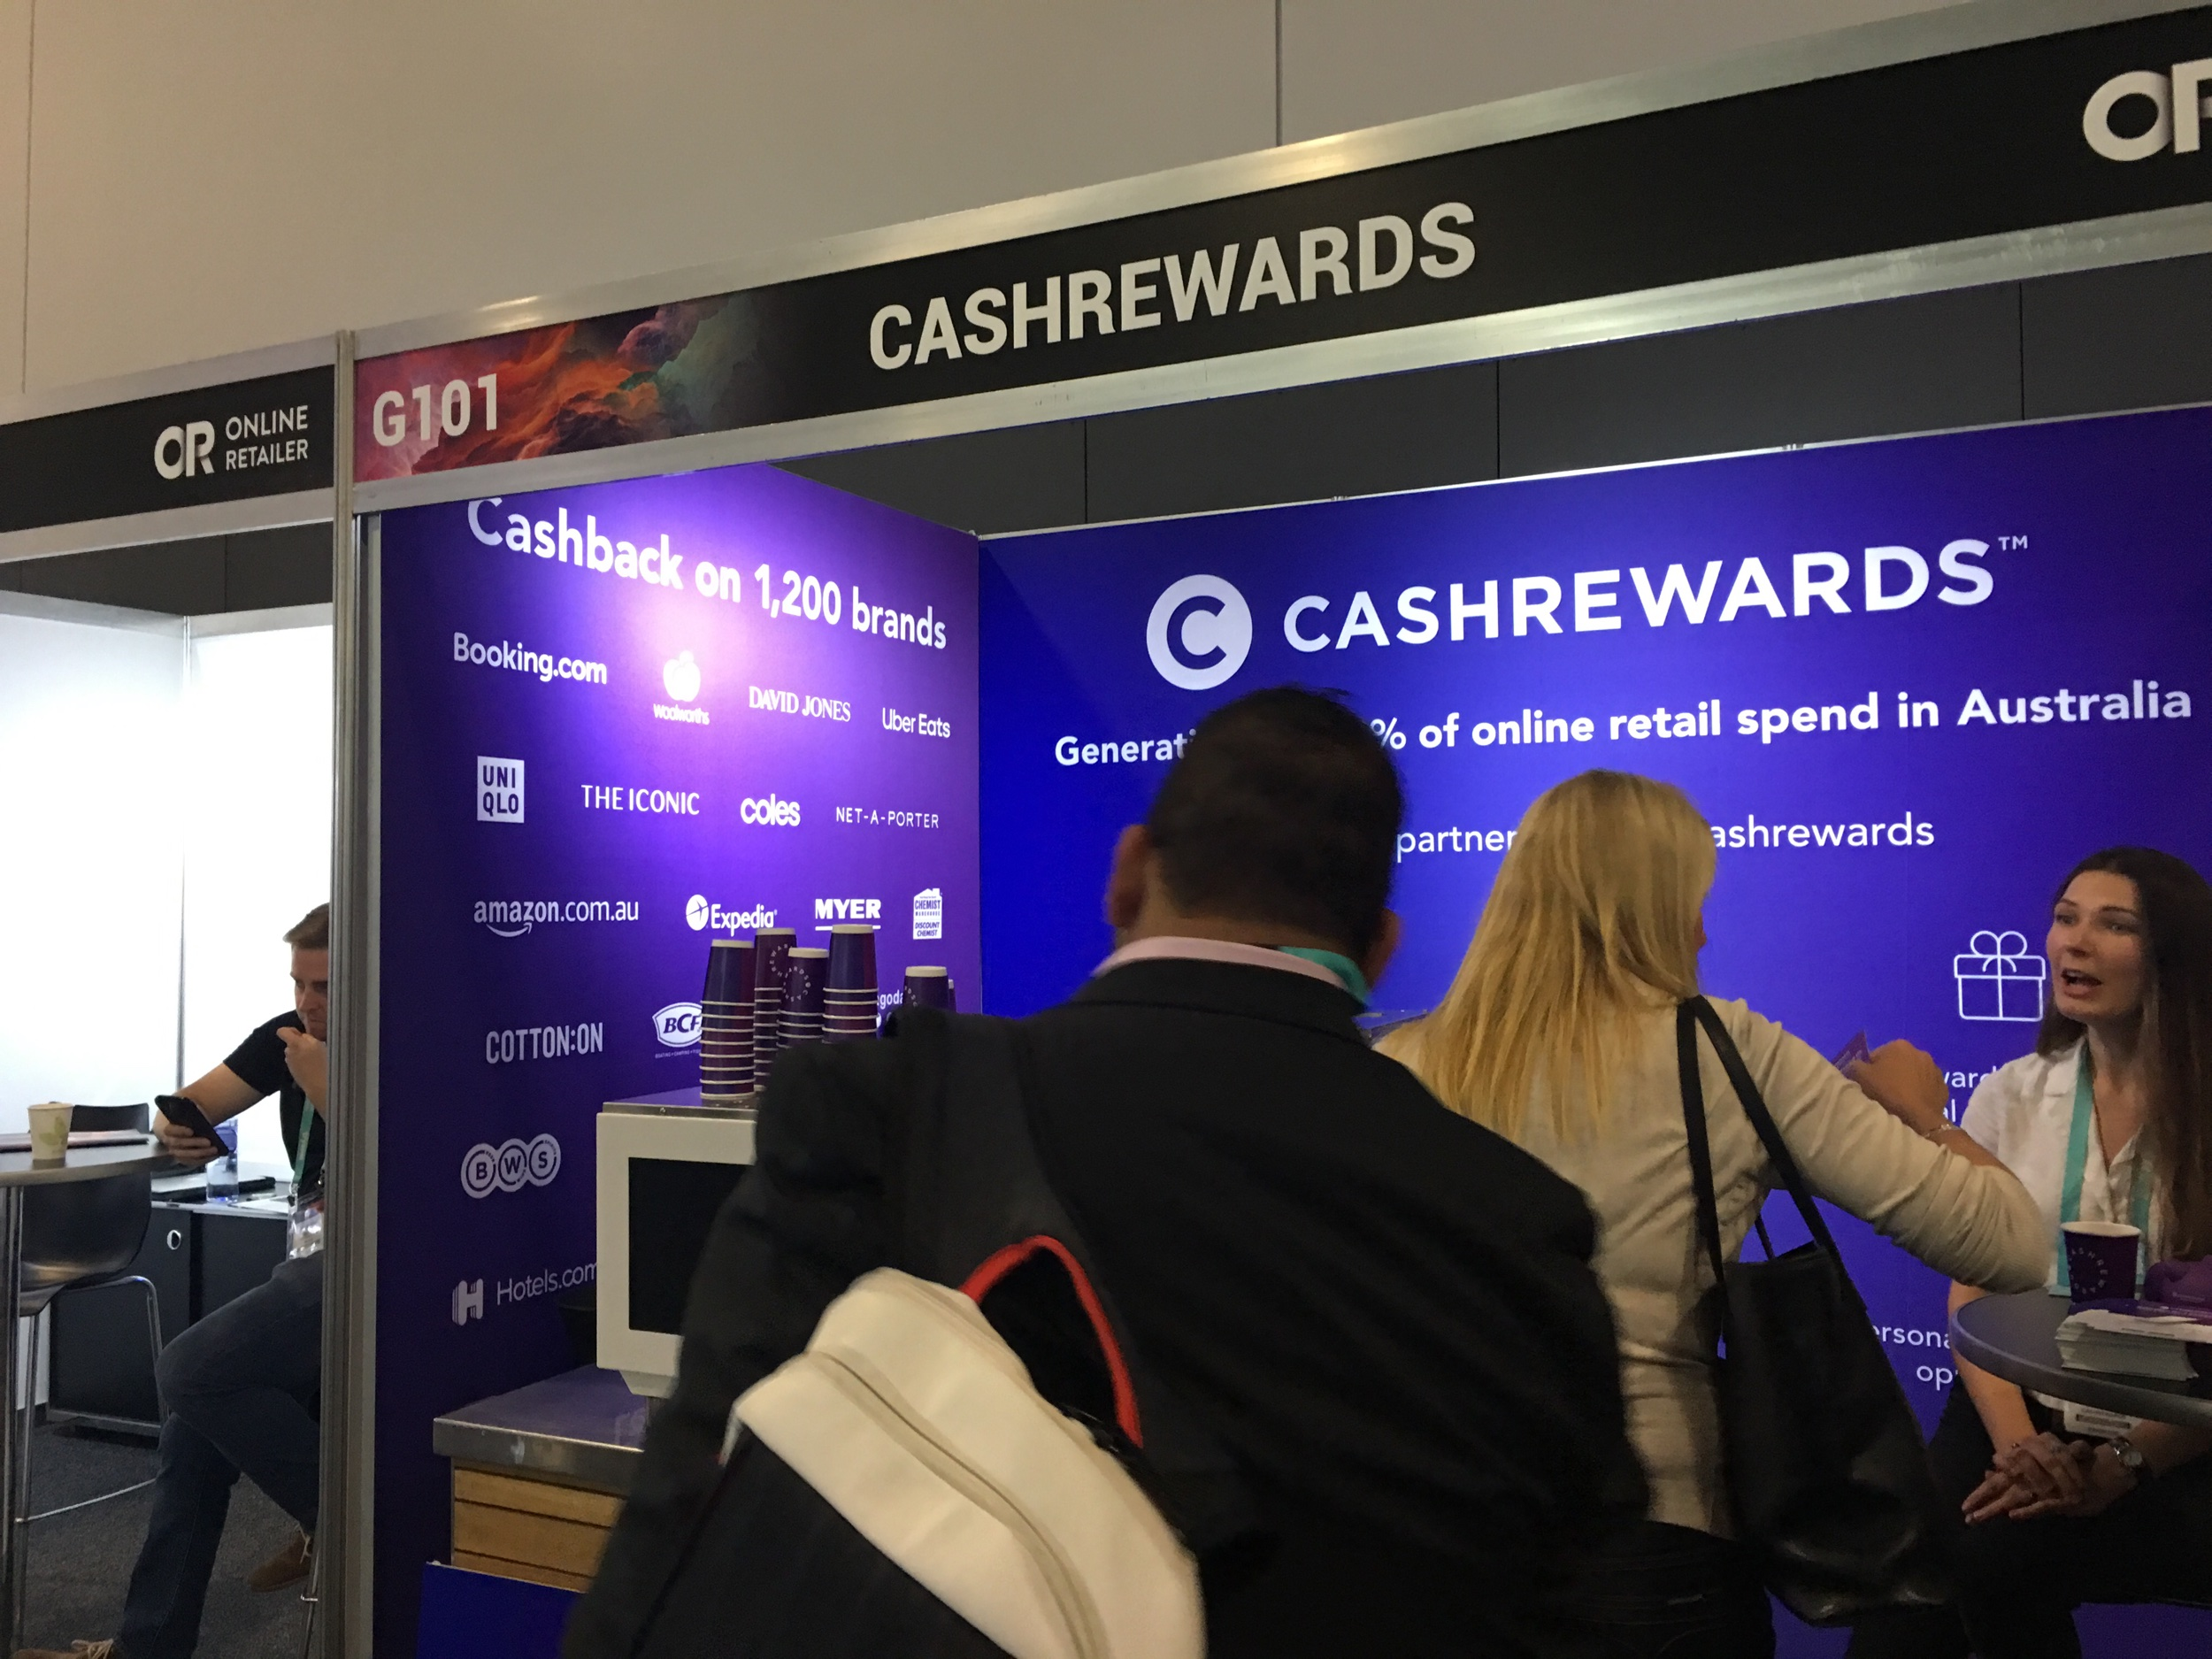 Cashrewards - Cashback Program